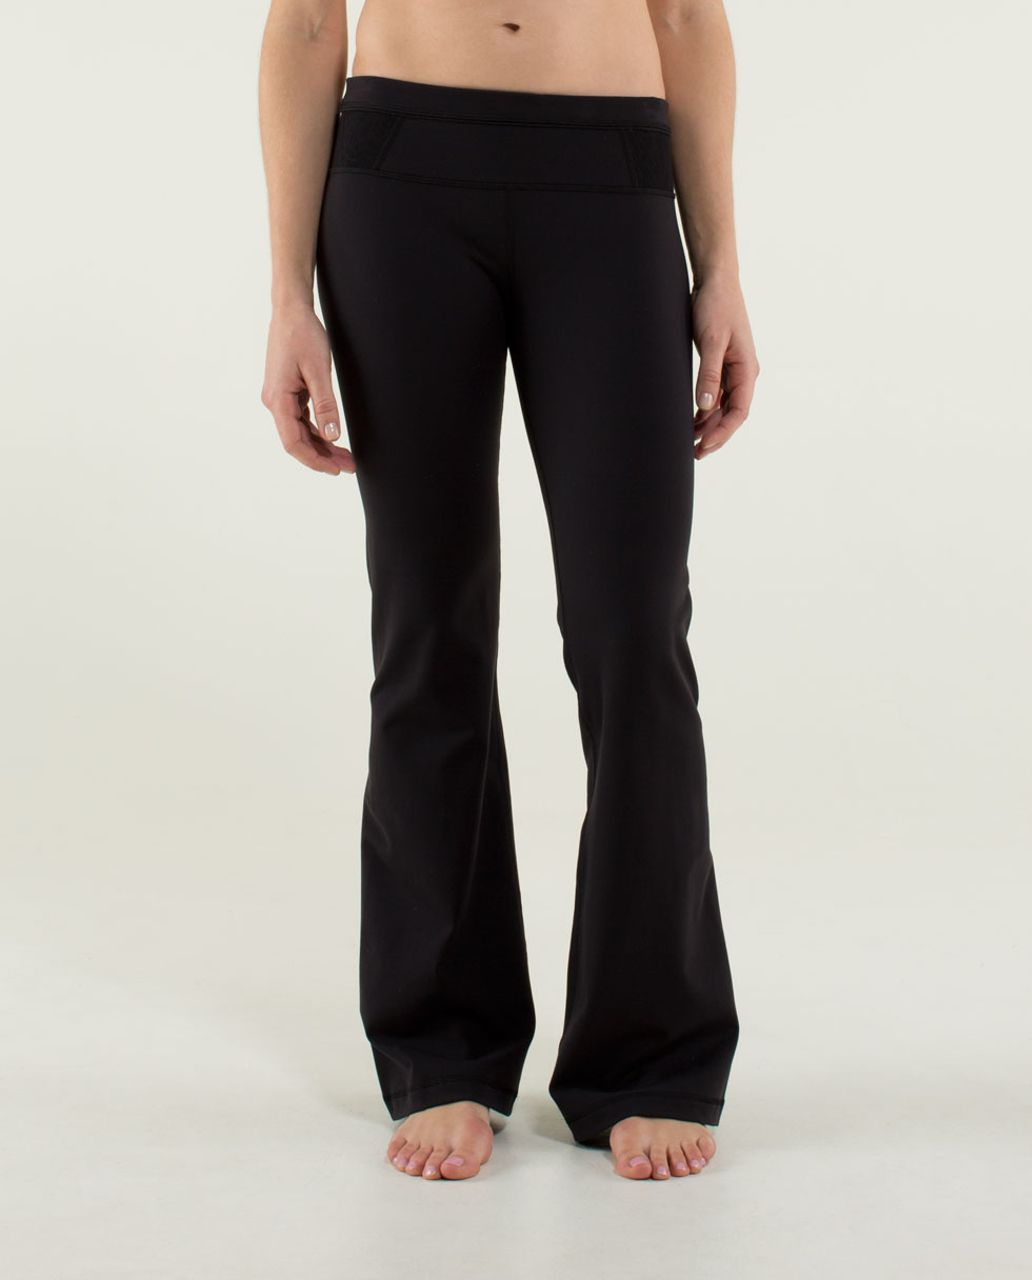 Lululemon Groove Pant (Regular) *Lace - Black / Lacemesh